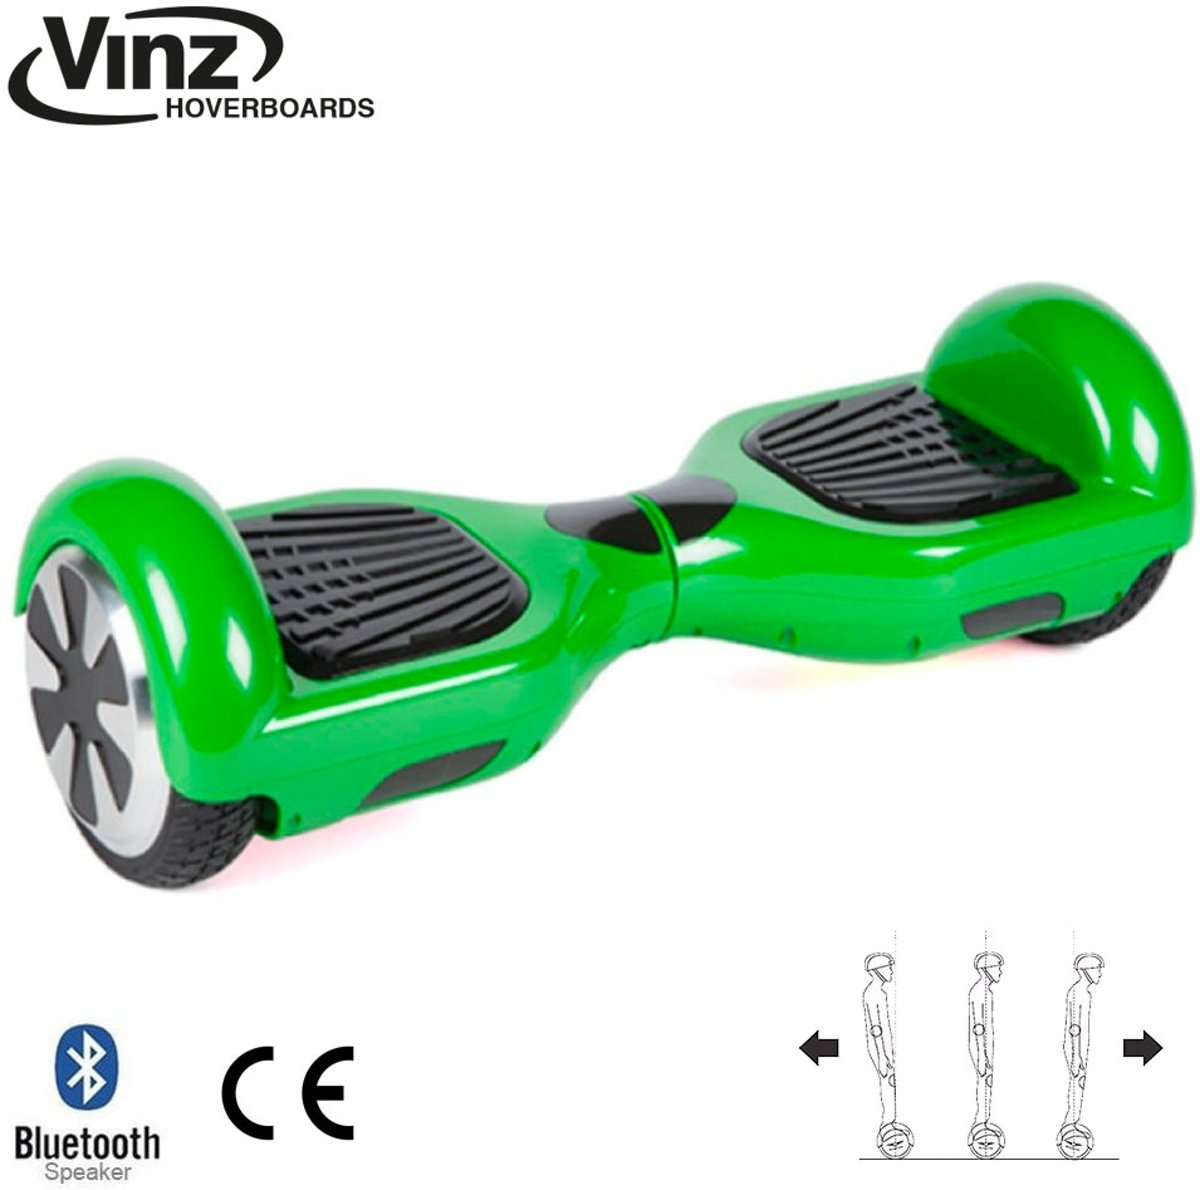 Vinz Hoverboard incl. Bluetooth Boxen & LED 6,5 Inch - Groen